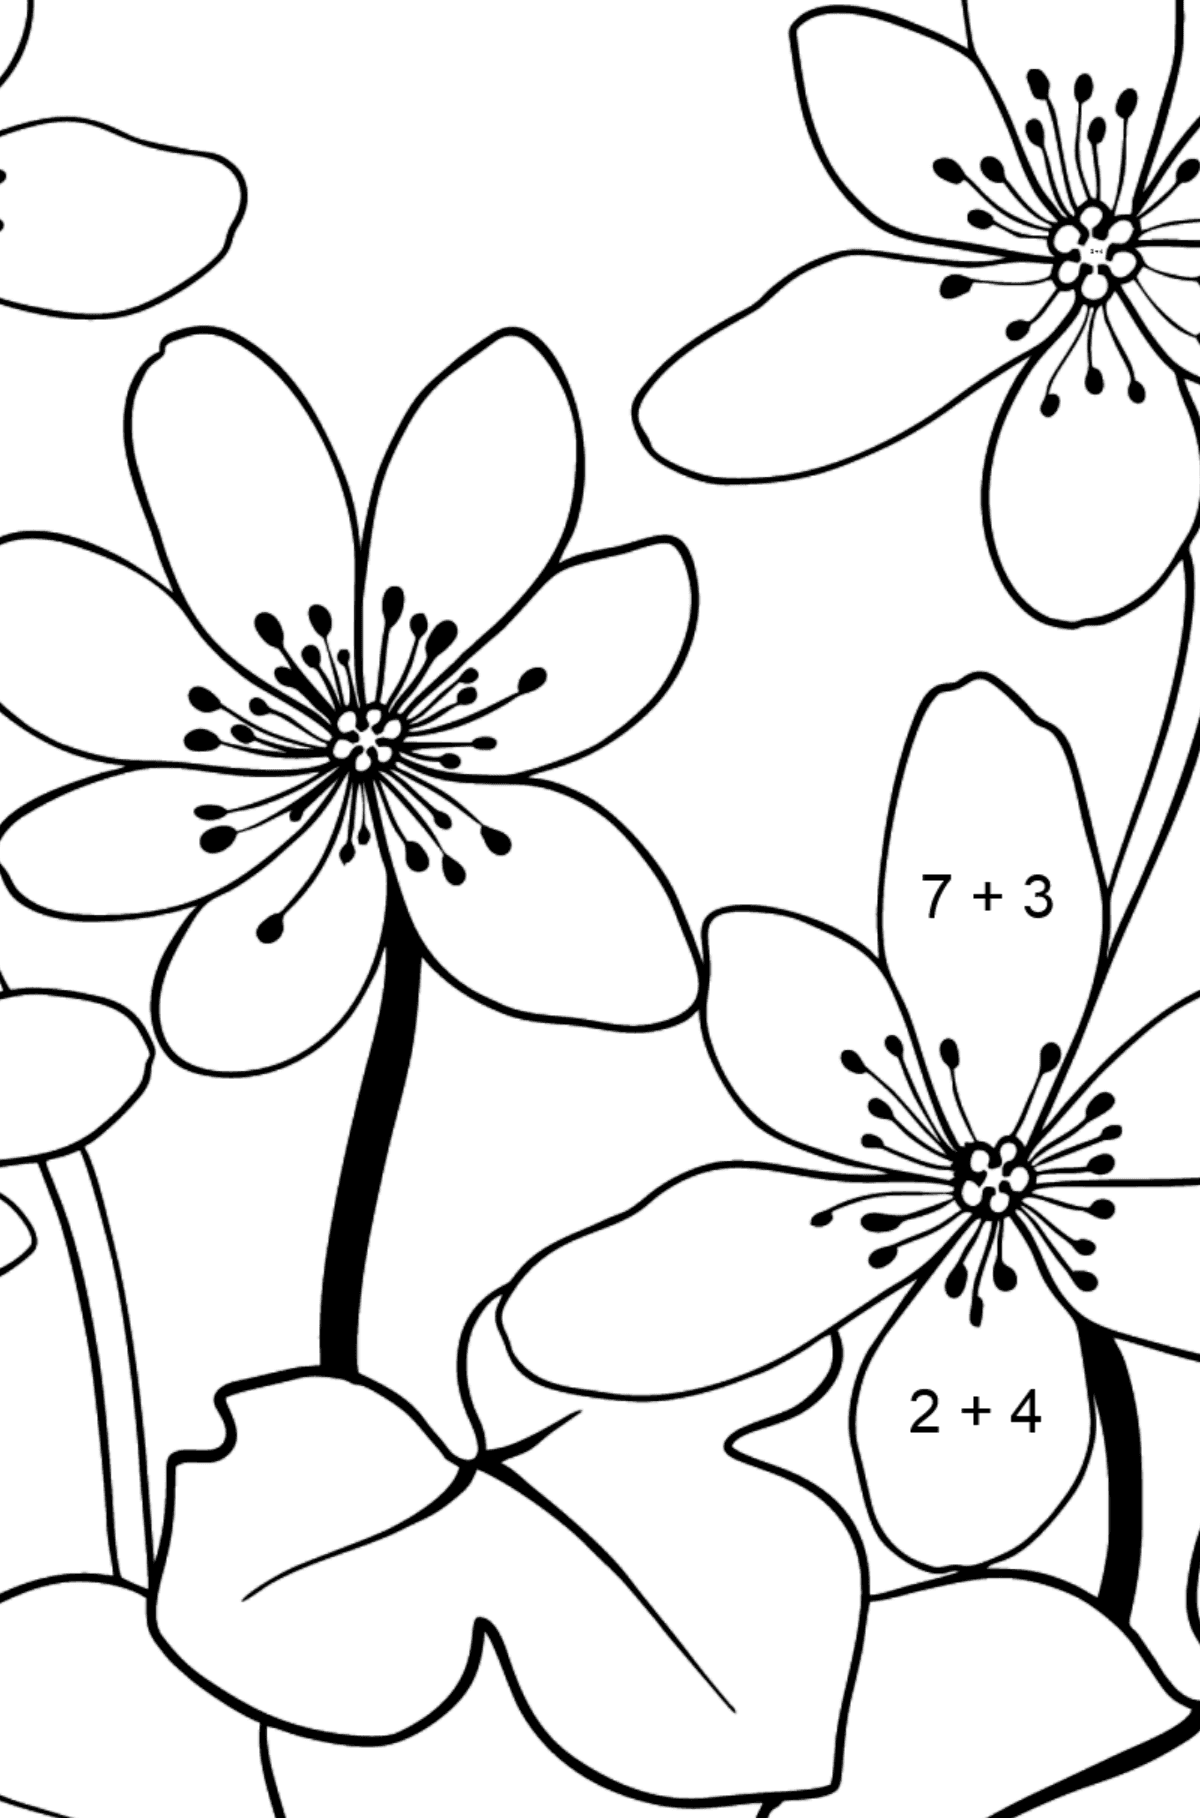 Flower Coloring Page - A Yellow and Orange Hepatica - Math Coloring - Addition for Kids